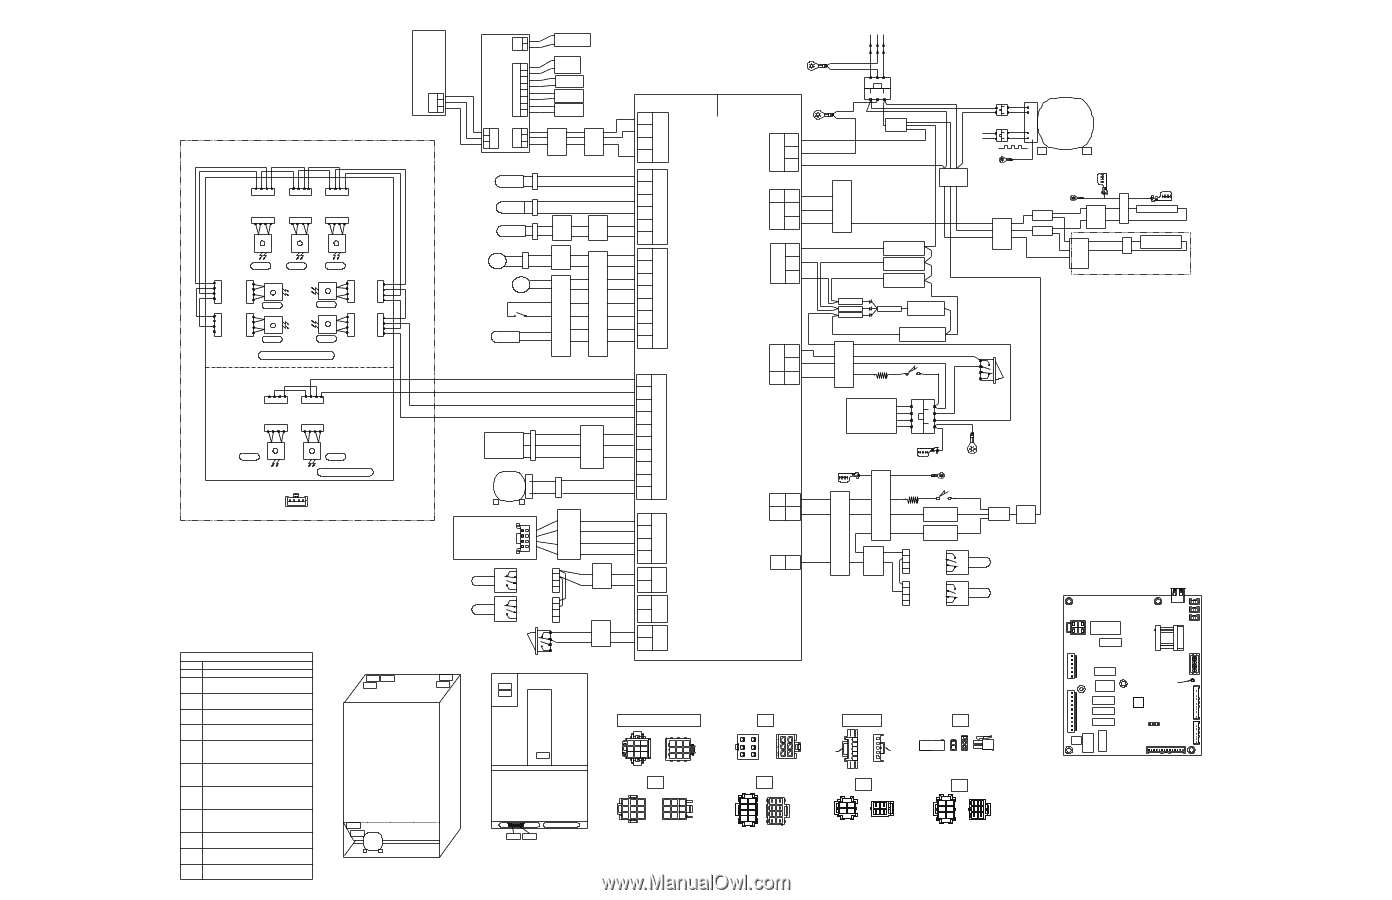 wiring diagram model mc1a